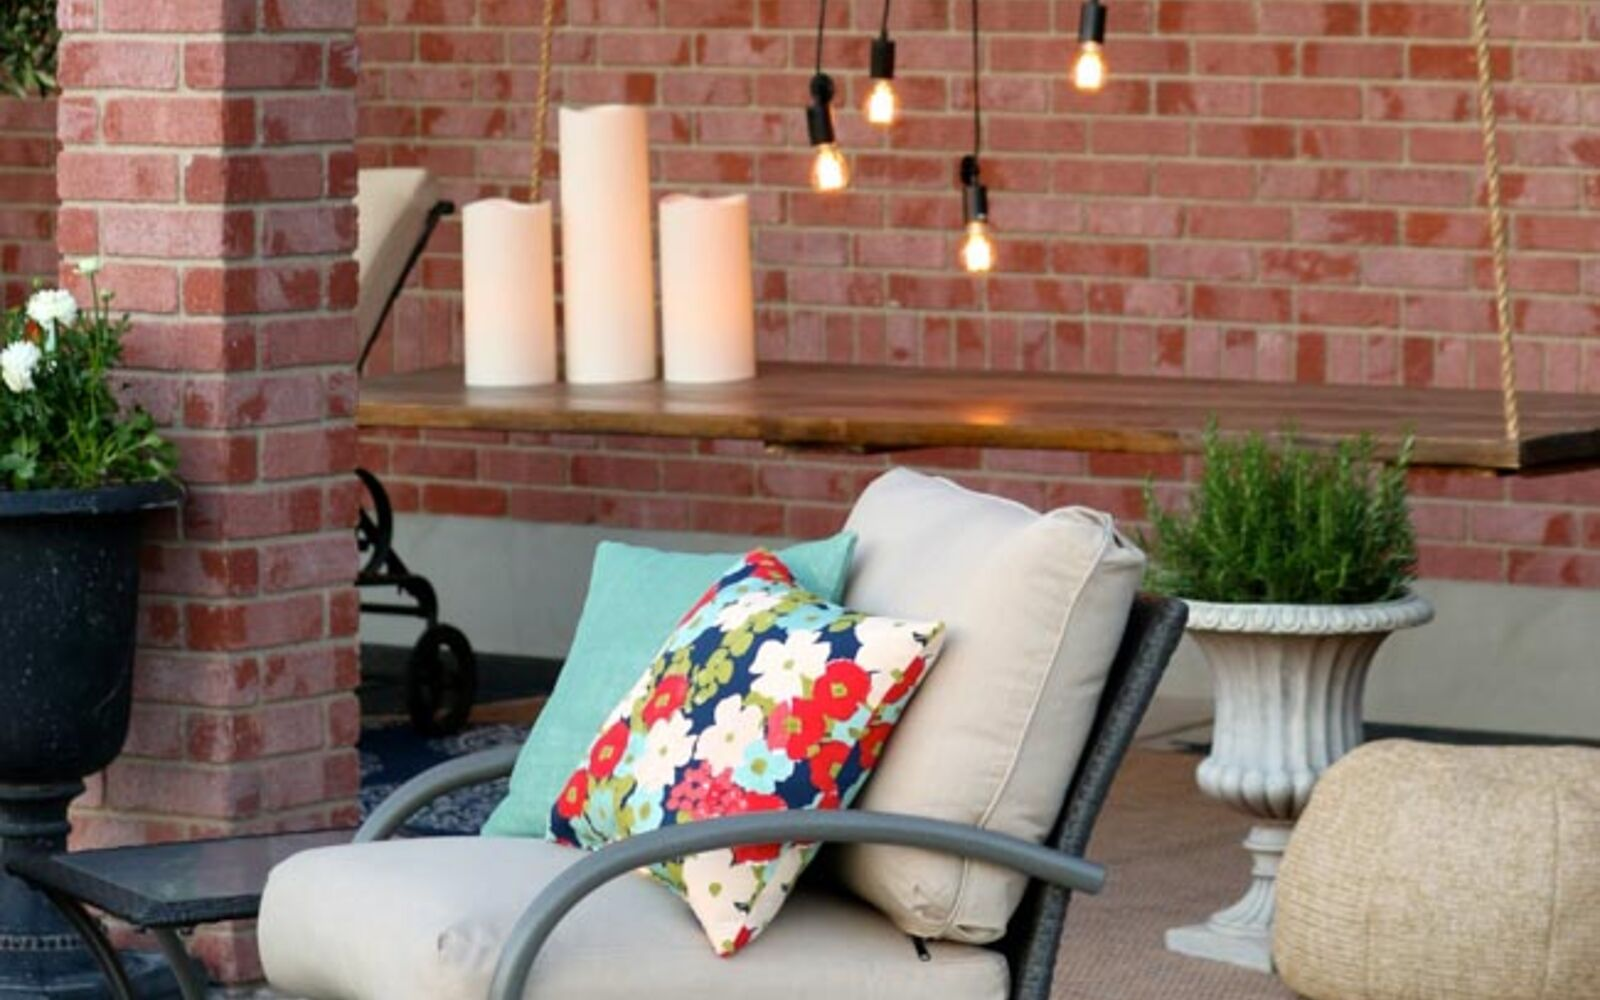 s upgrade your backyard with these 30 clever ideas, Add a stylish hanging table to your backyard